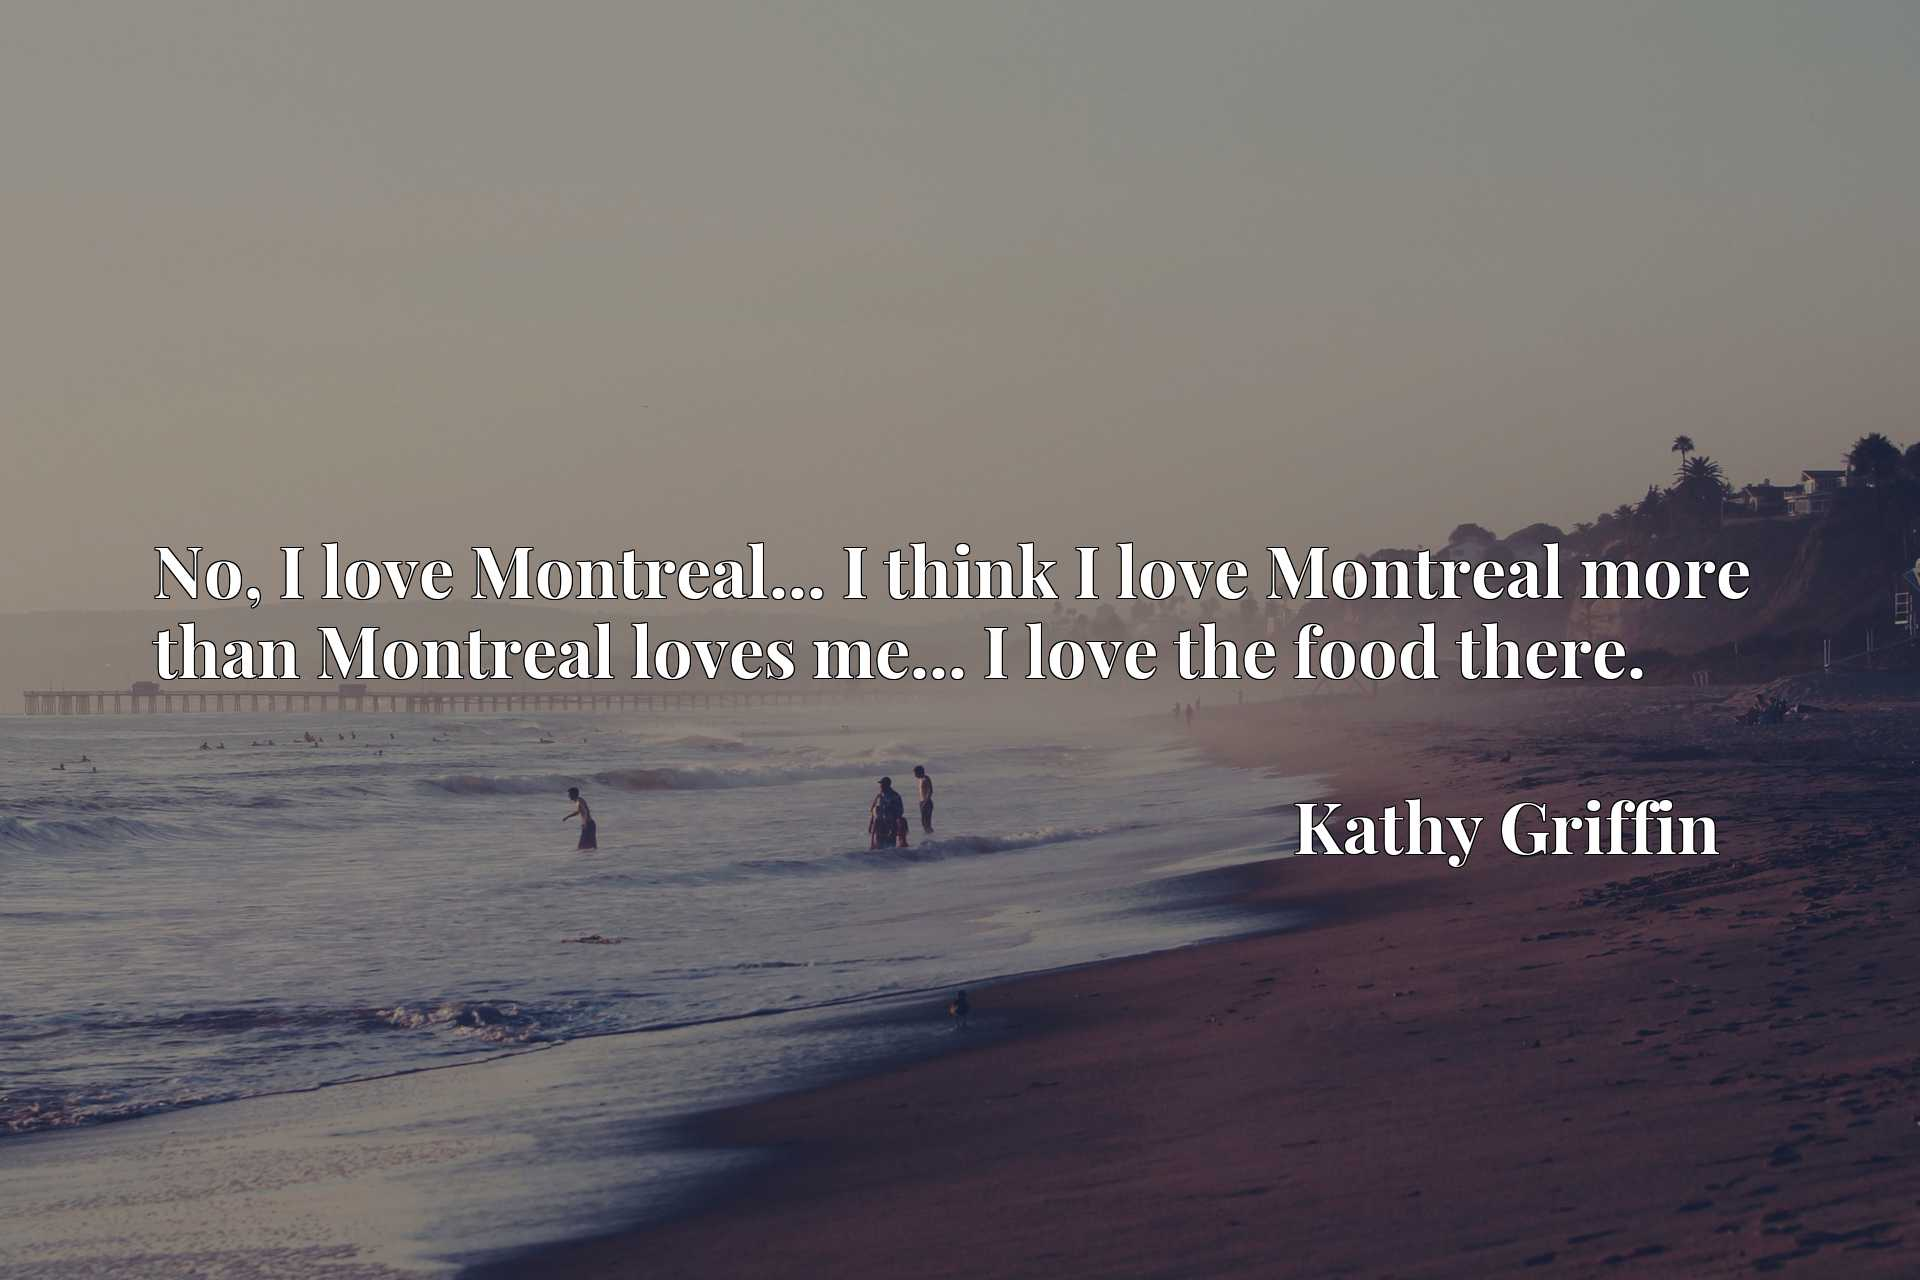 No, I love Montreal... I think I love Montreal more than Montreal loves me... I love the food there.